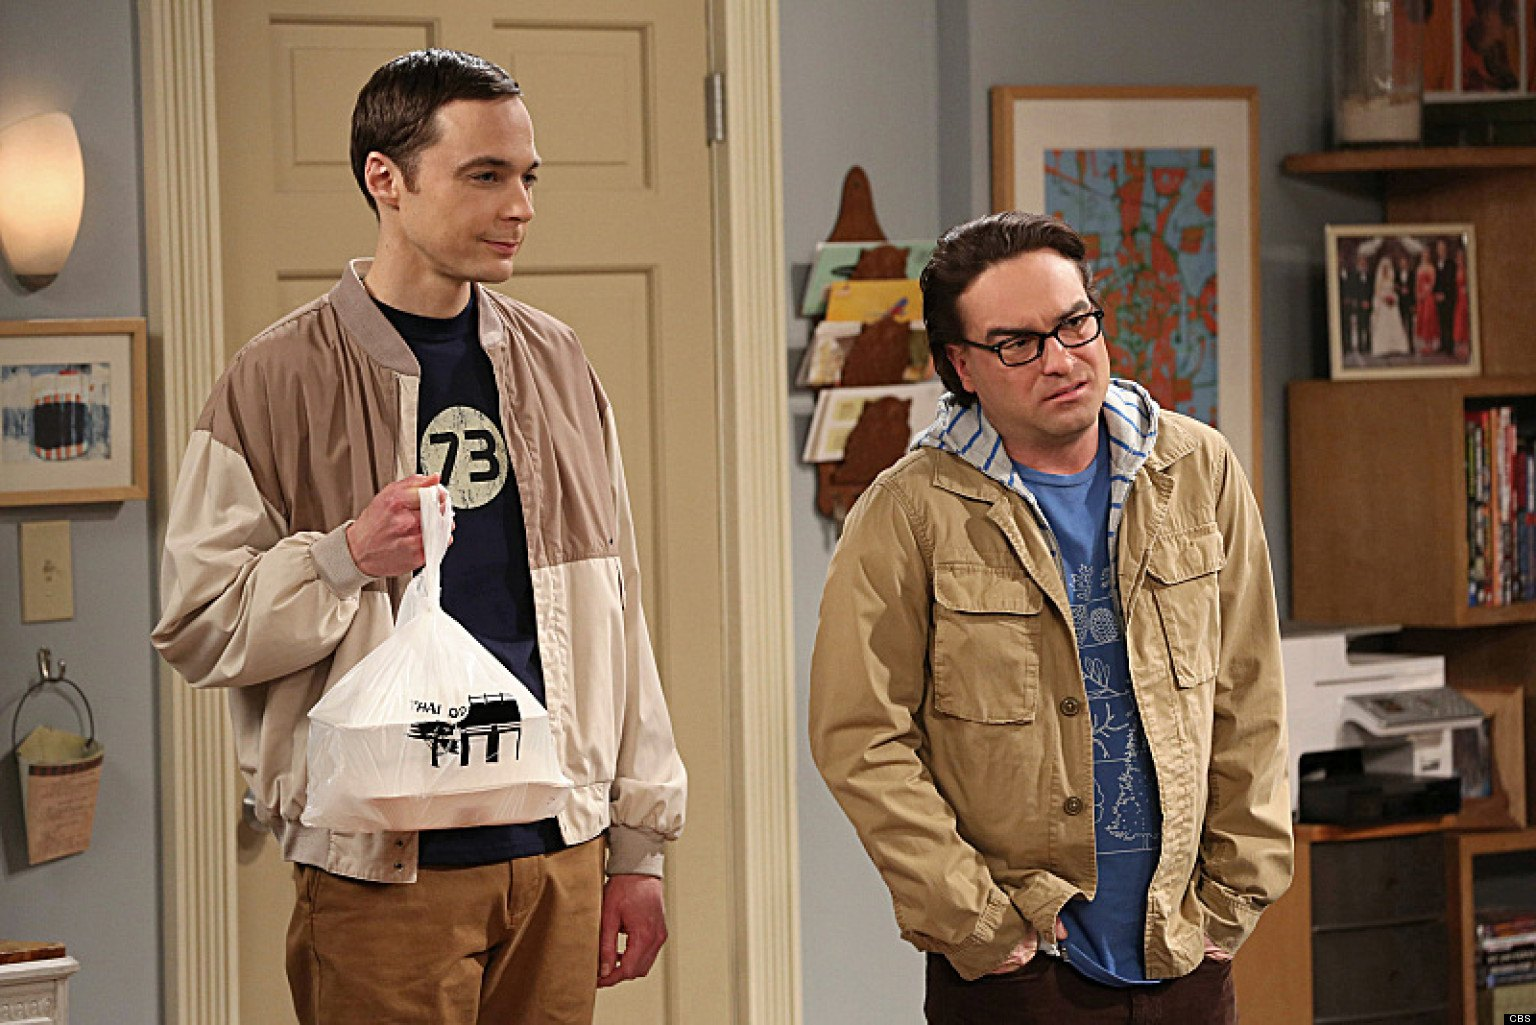 Sheldon and Leonard stand next to each other while holding bags of food